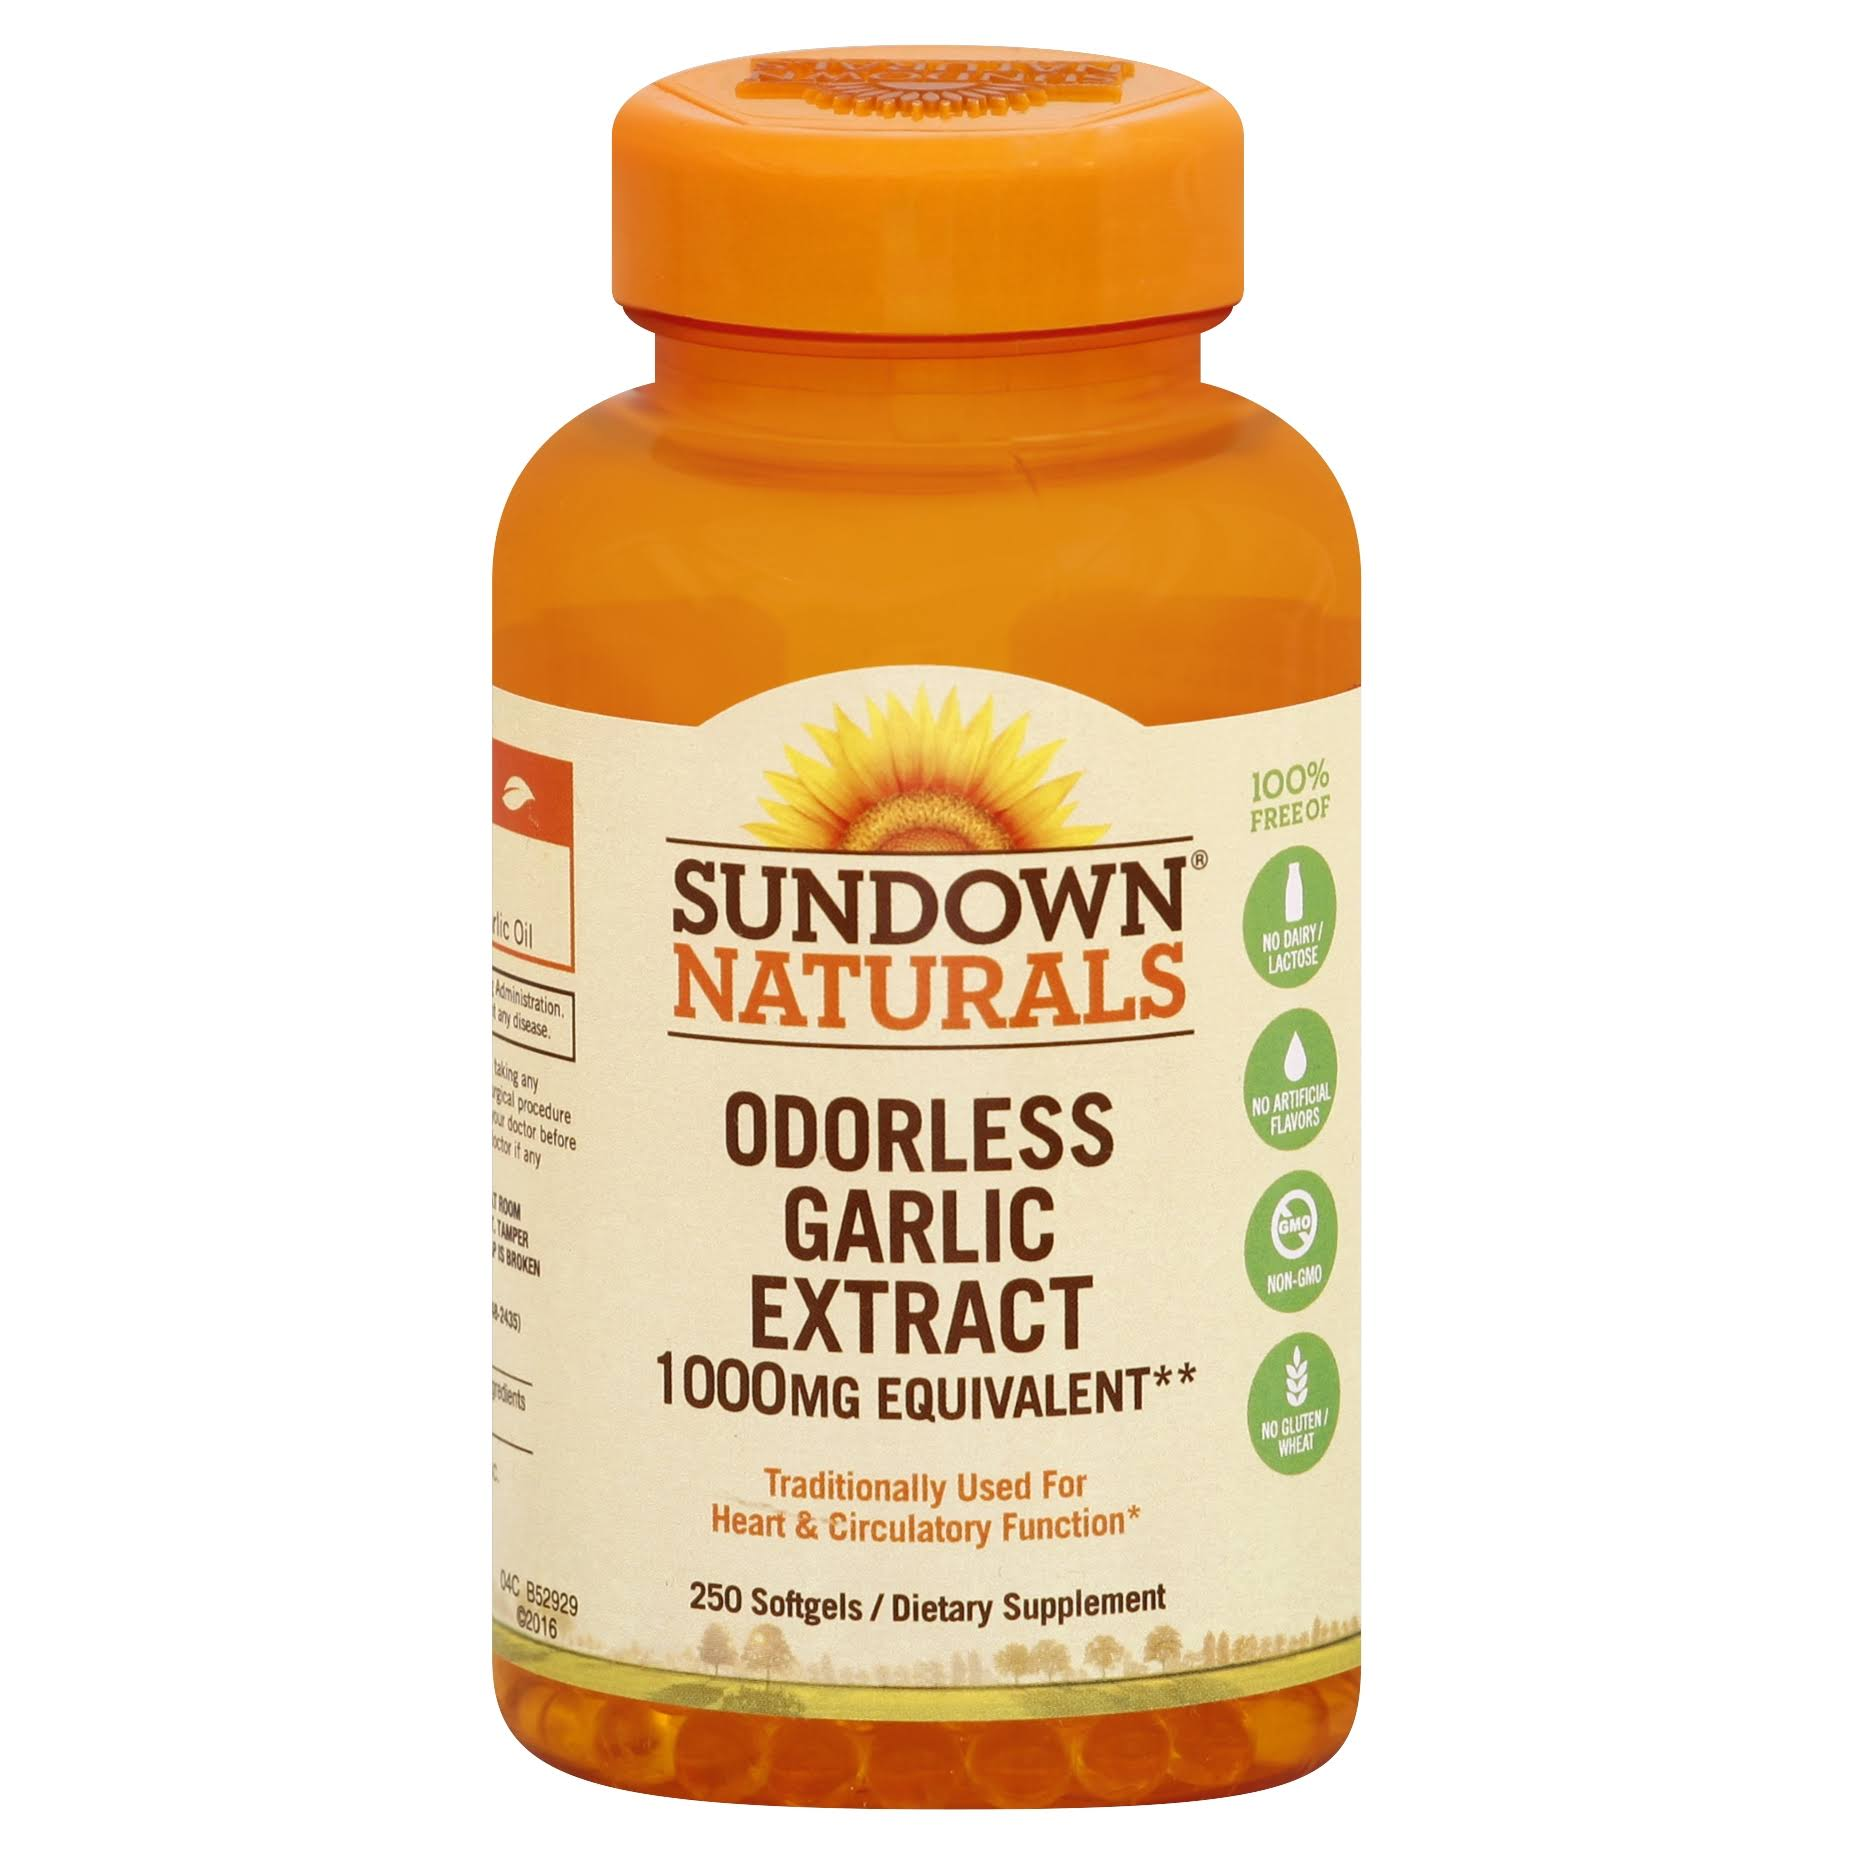 Sundown Naturals Odorless Garlic Dietary Supplement - 1000mg, 250ct